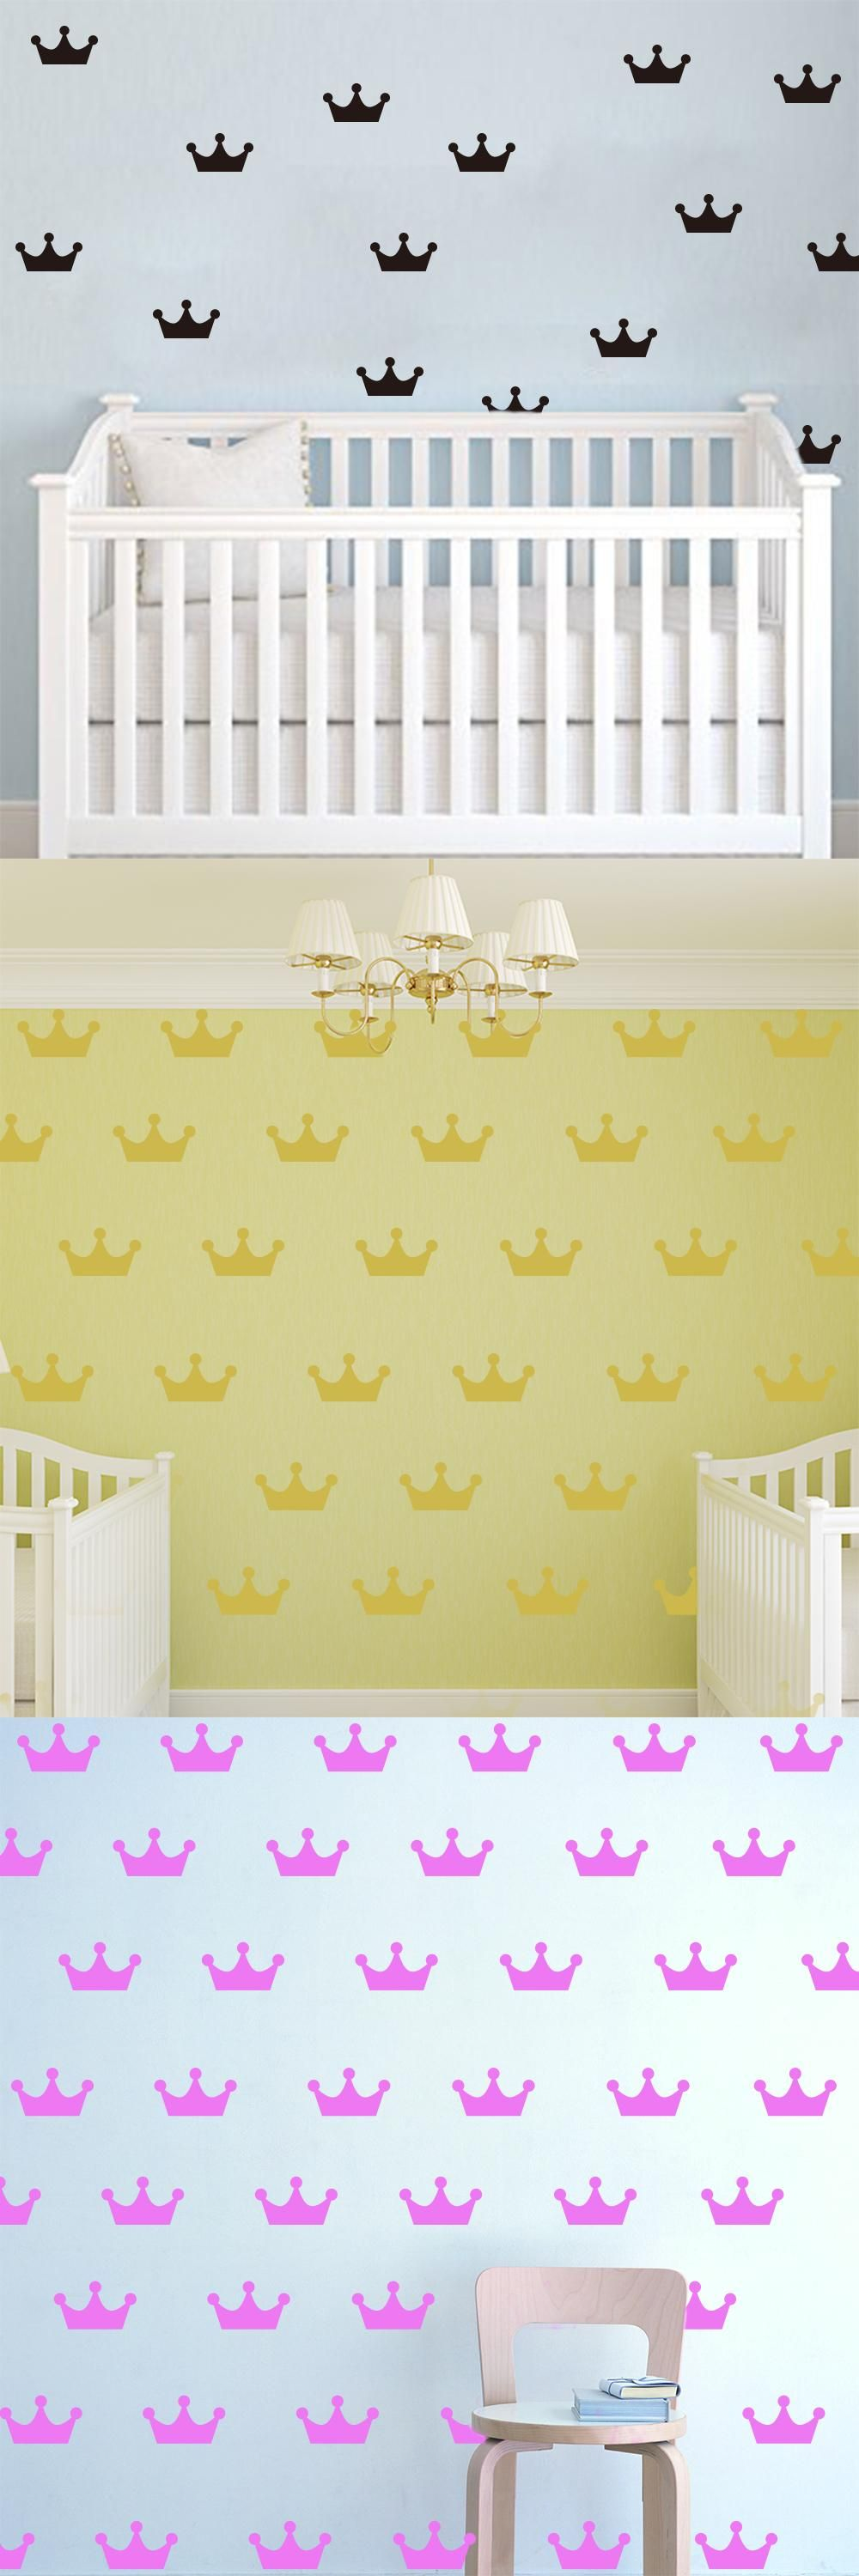 Cartoon Crowns Wall stickers DIY Wall Decals For Kids Room Decor ...